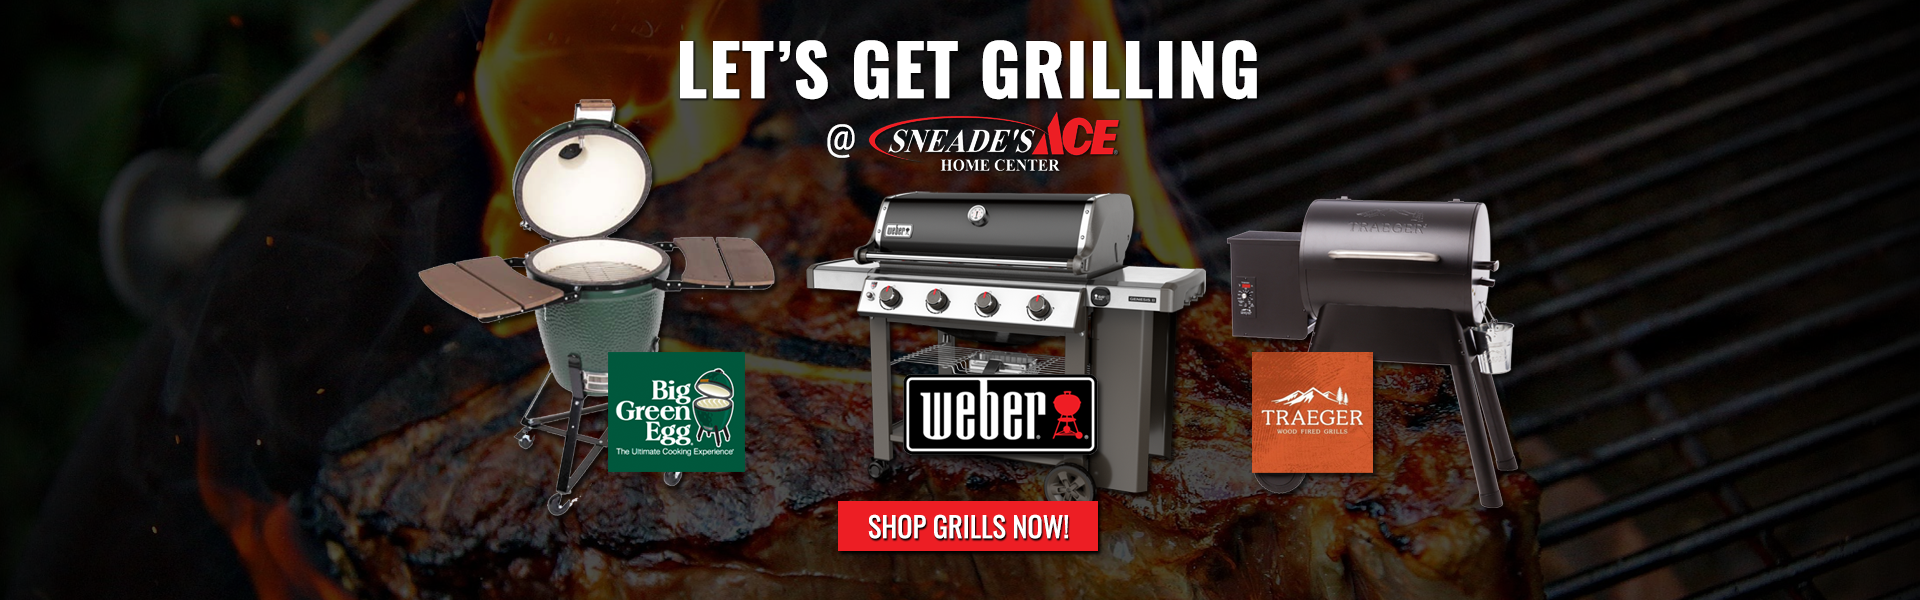 lets get grilling at sneades slider